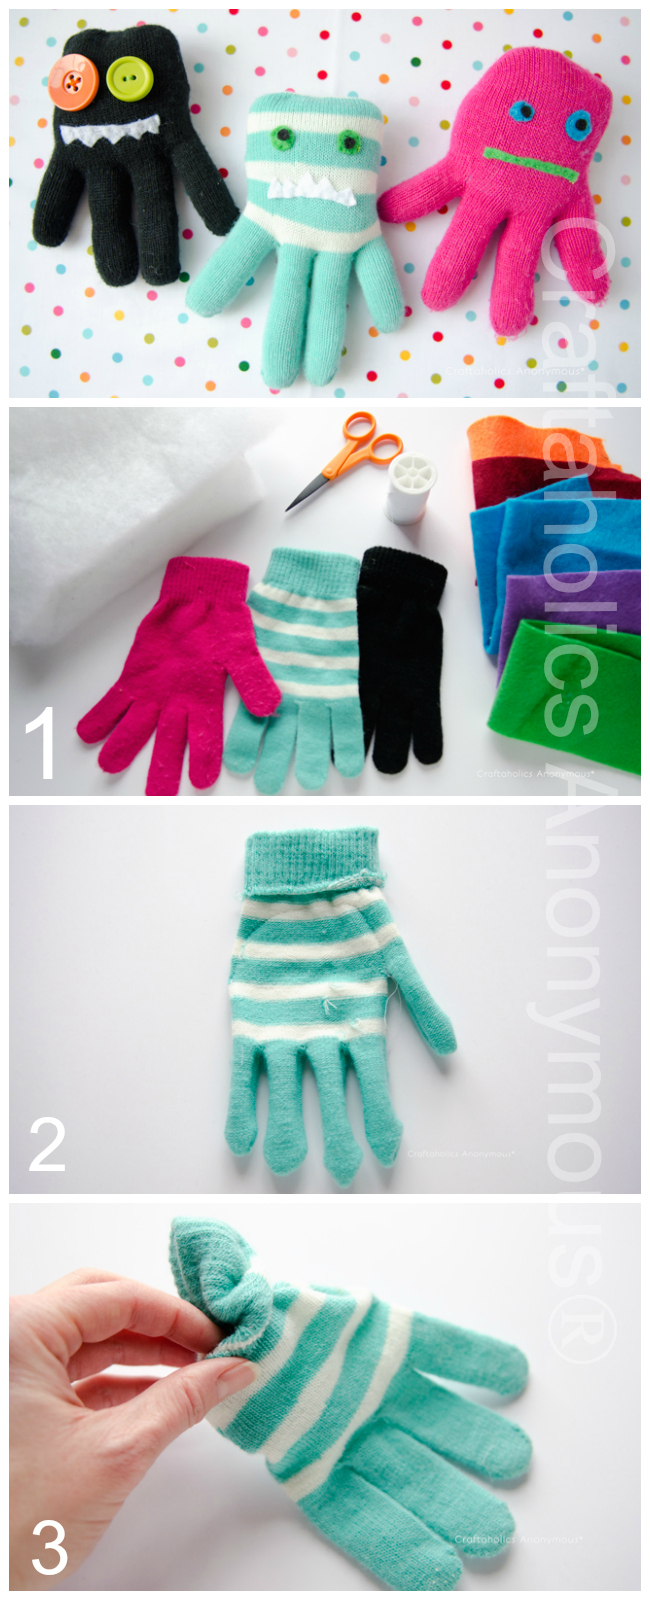 https://i1.wp.com/www.craftaholicsanonymous.net/wp-content/uploads/2014/01/how-to-make-glove-monsters1.jpg